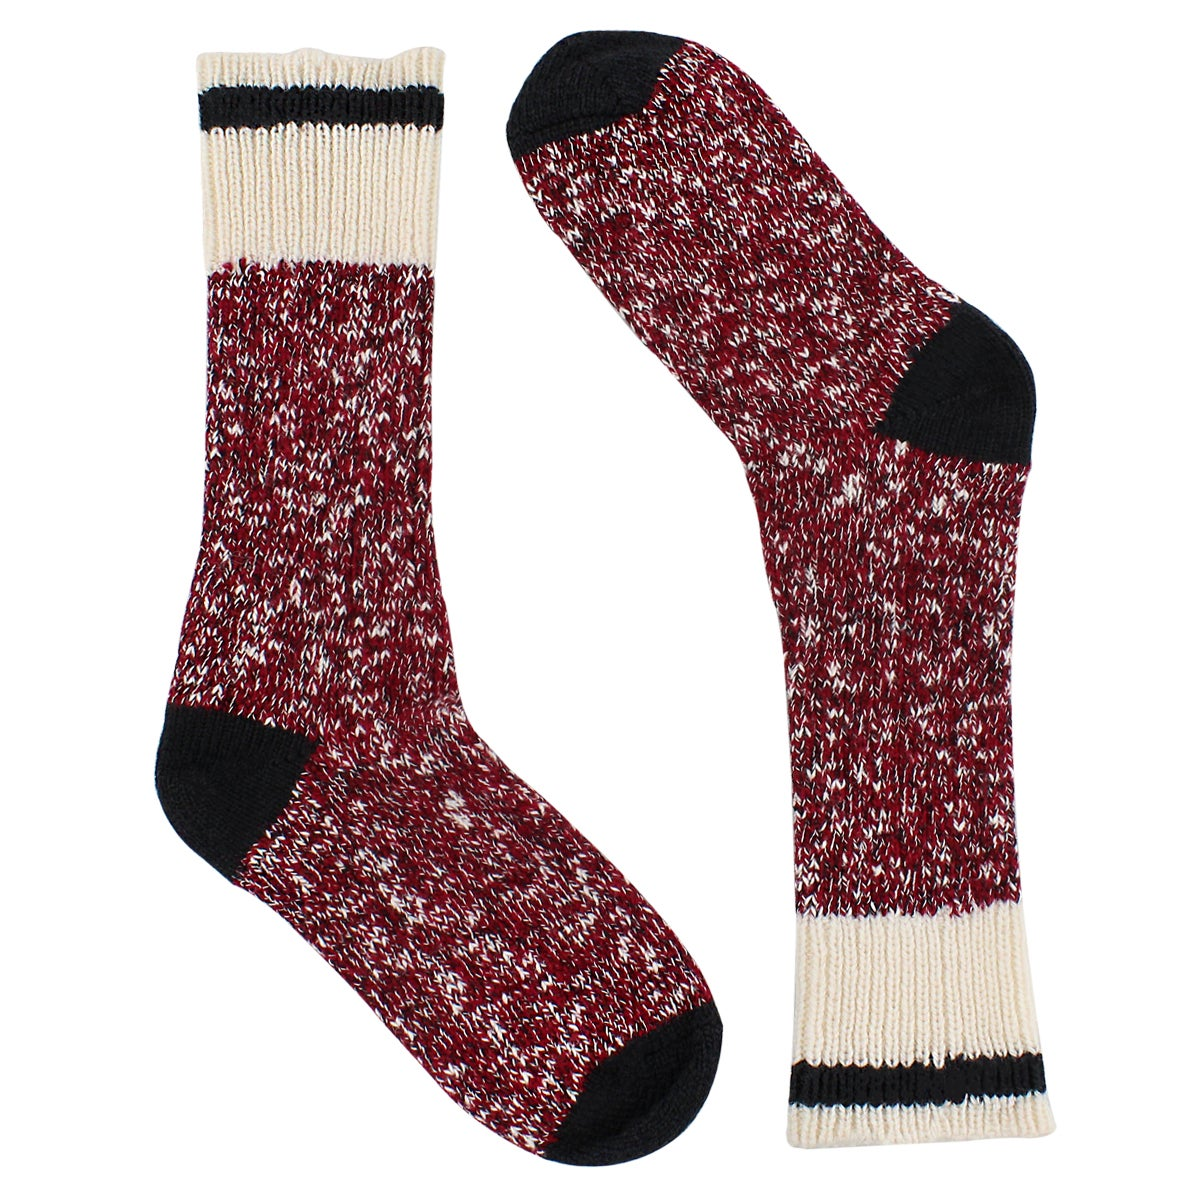 Lds Duray red marled work sock